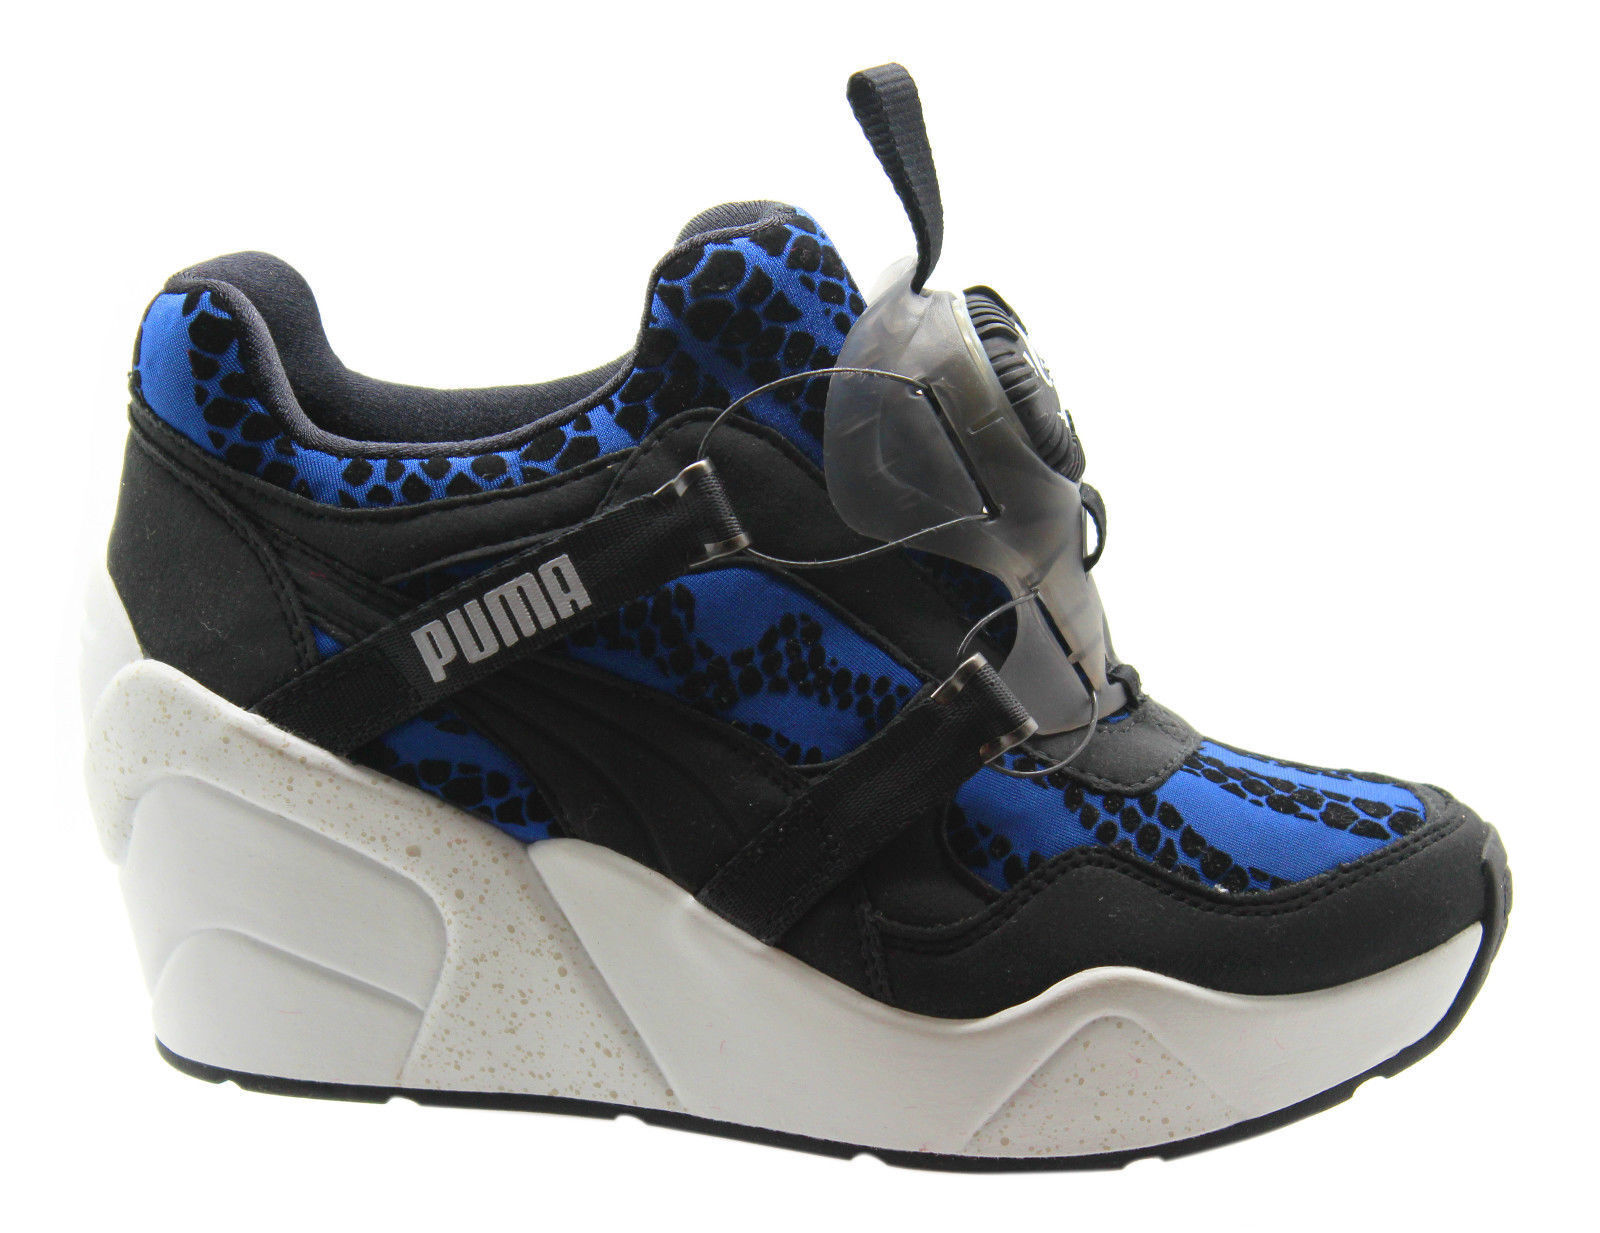 Puma Disc Wedge WR Womens Trainers Shoes No Lace Blue Black 357290 ... cd776f6d4